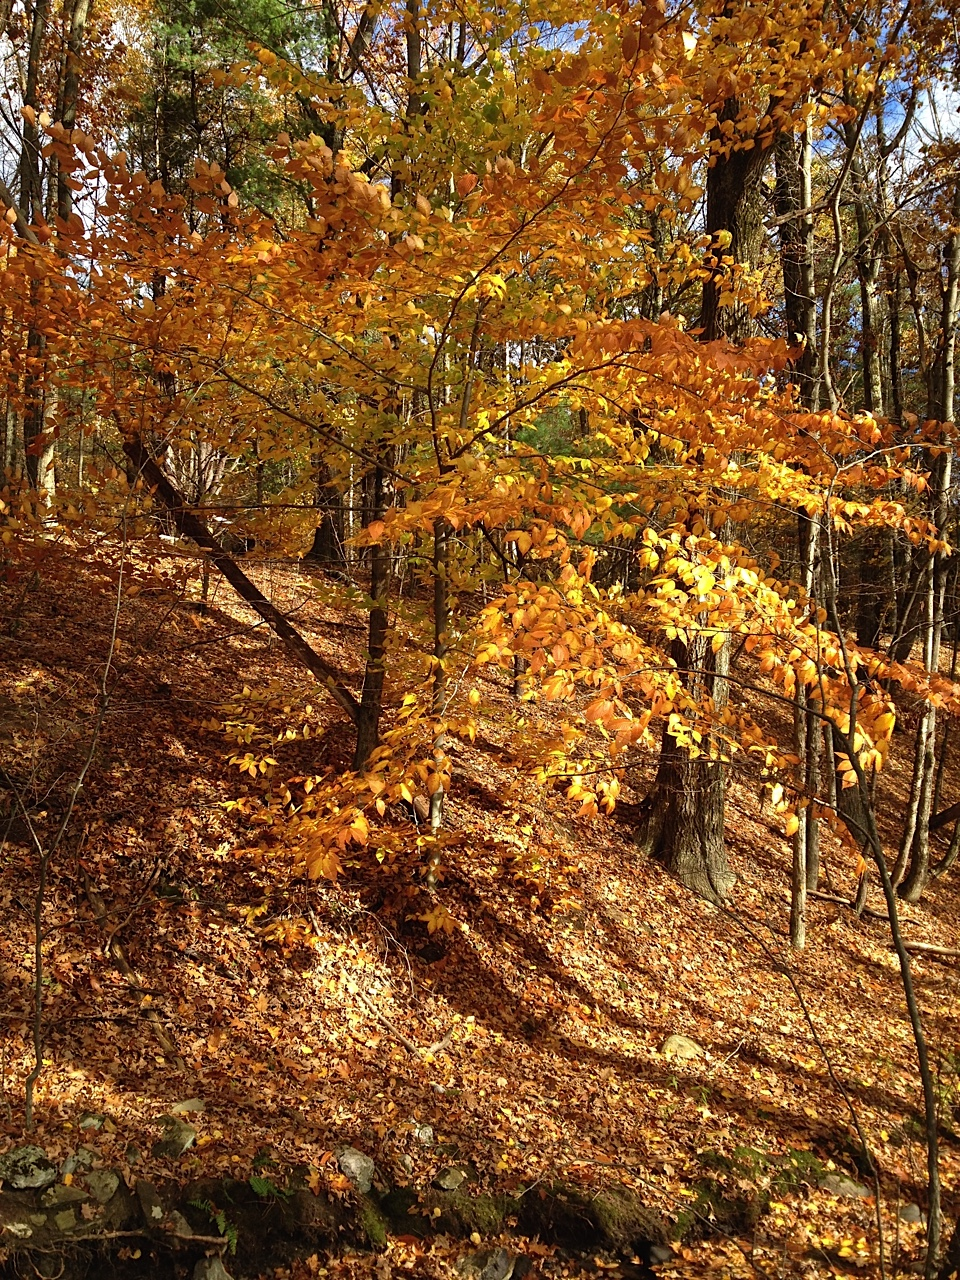 Native plant: American beech